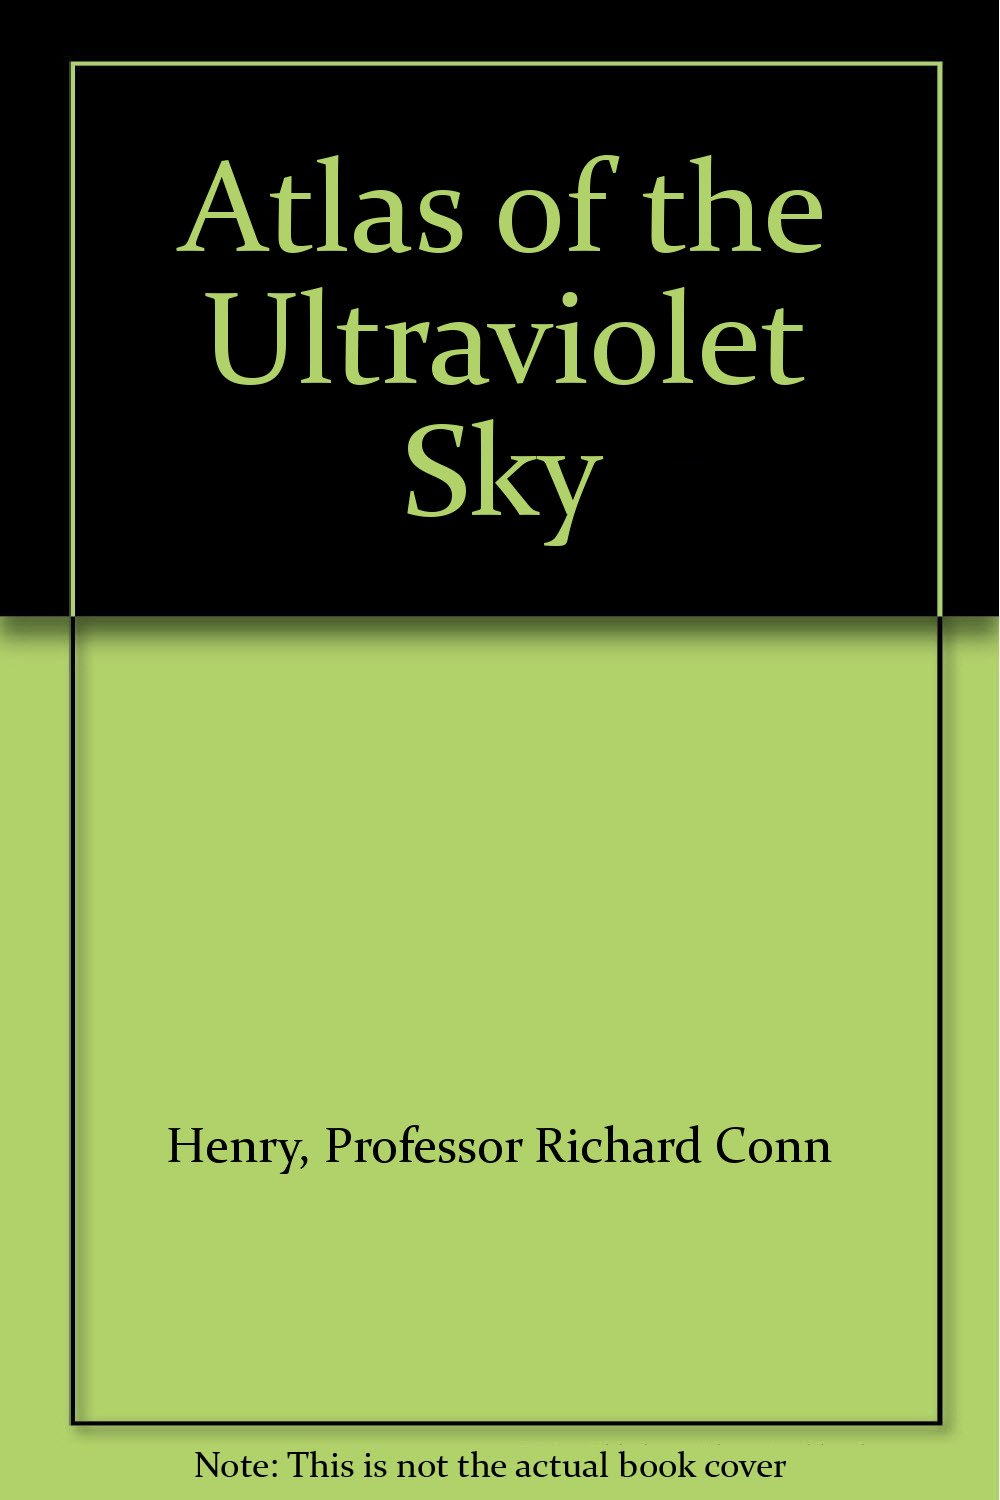 Atlas of the Ultraviolet Sky, Henry, Professor Richard Conn